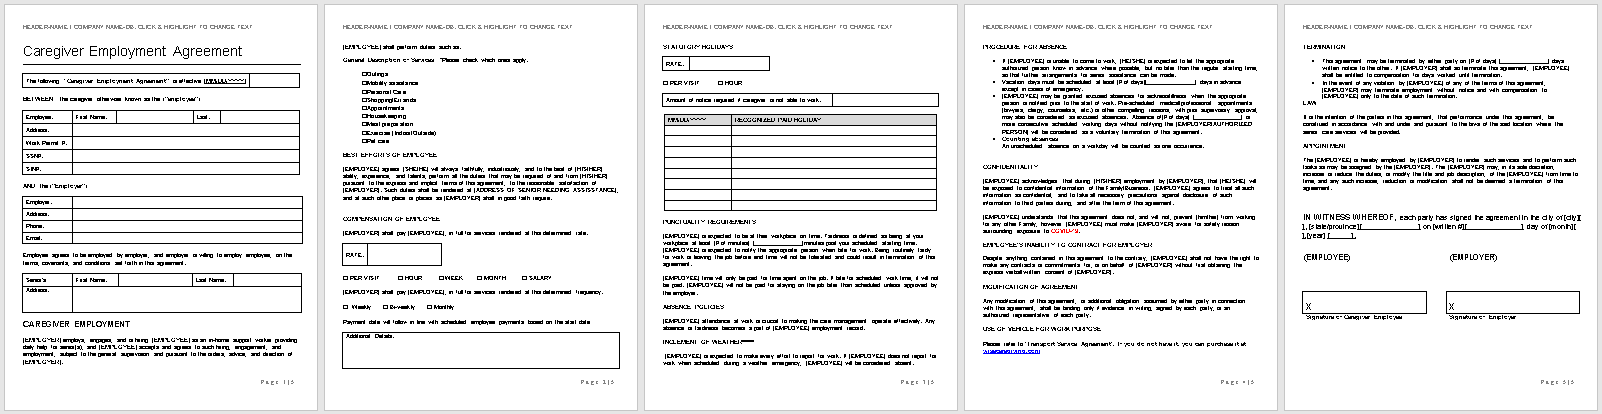 Caregiver Employment Agreement Template-full preview-Hire Private-wise caregiving